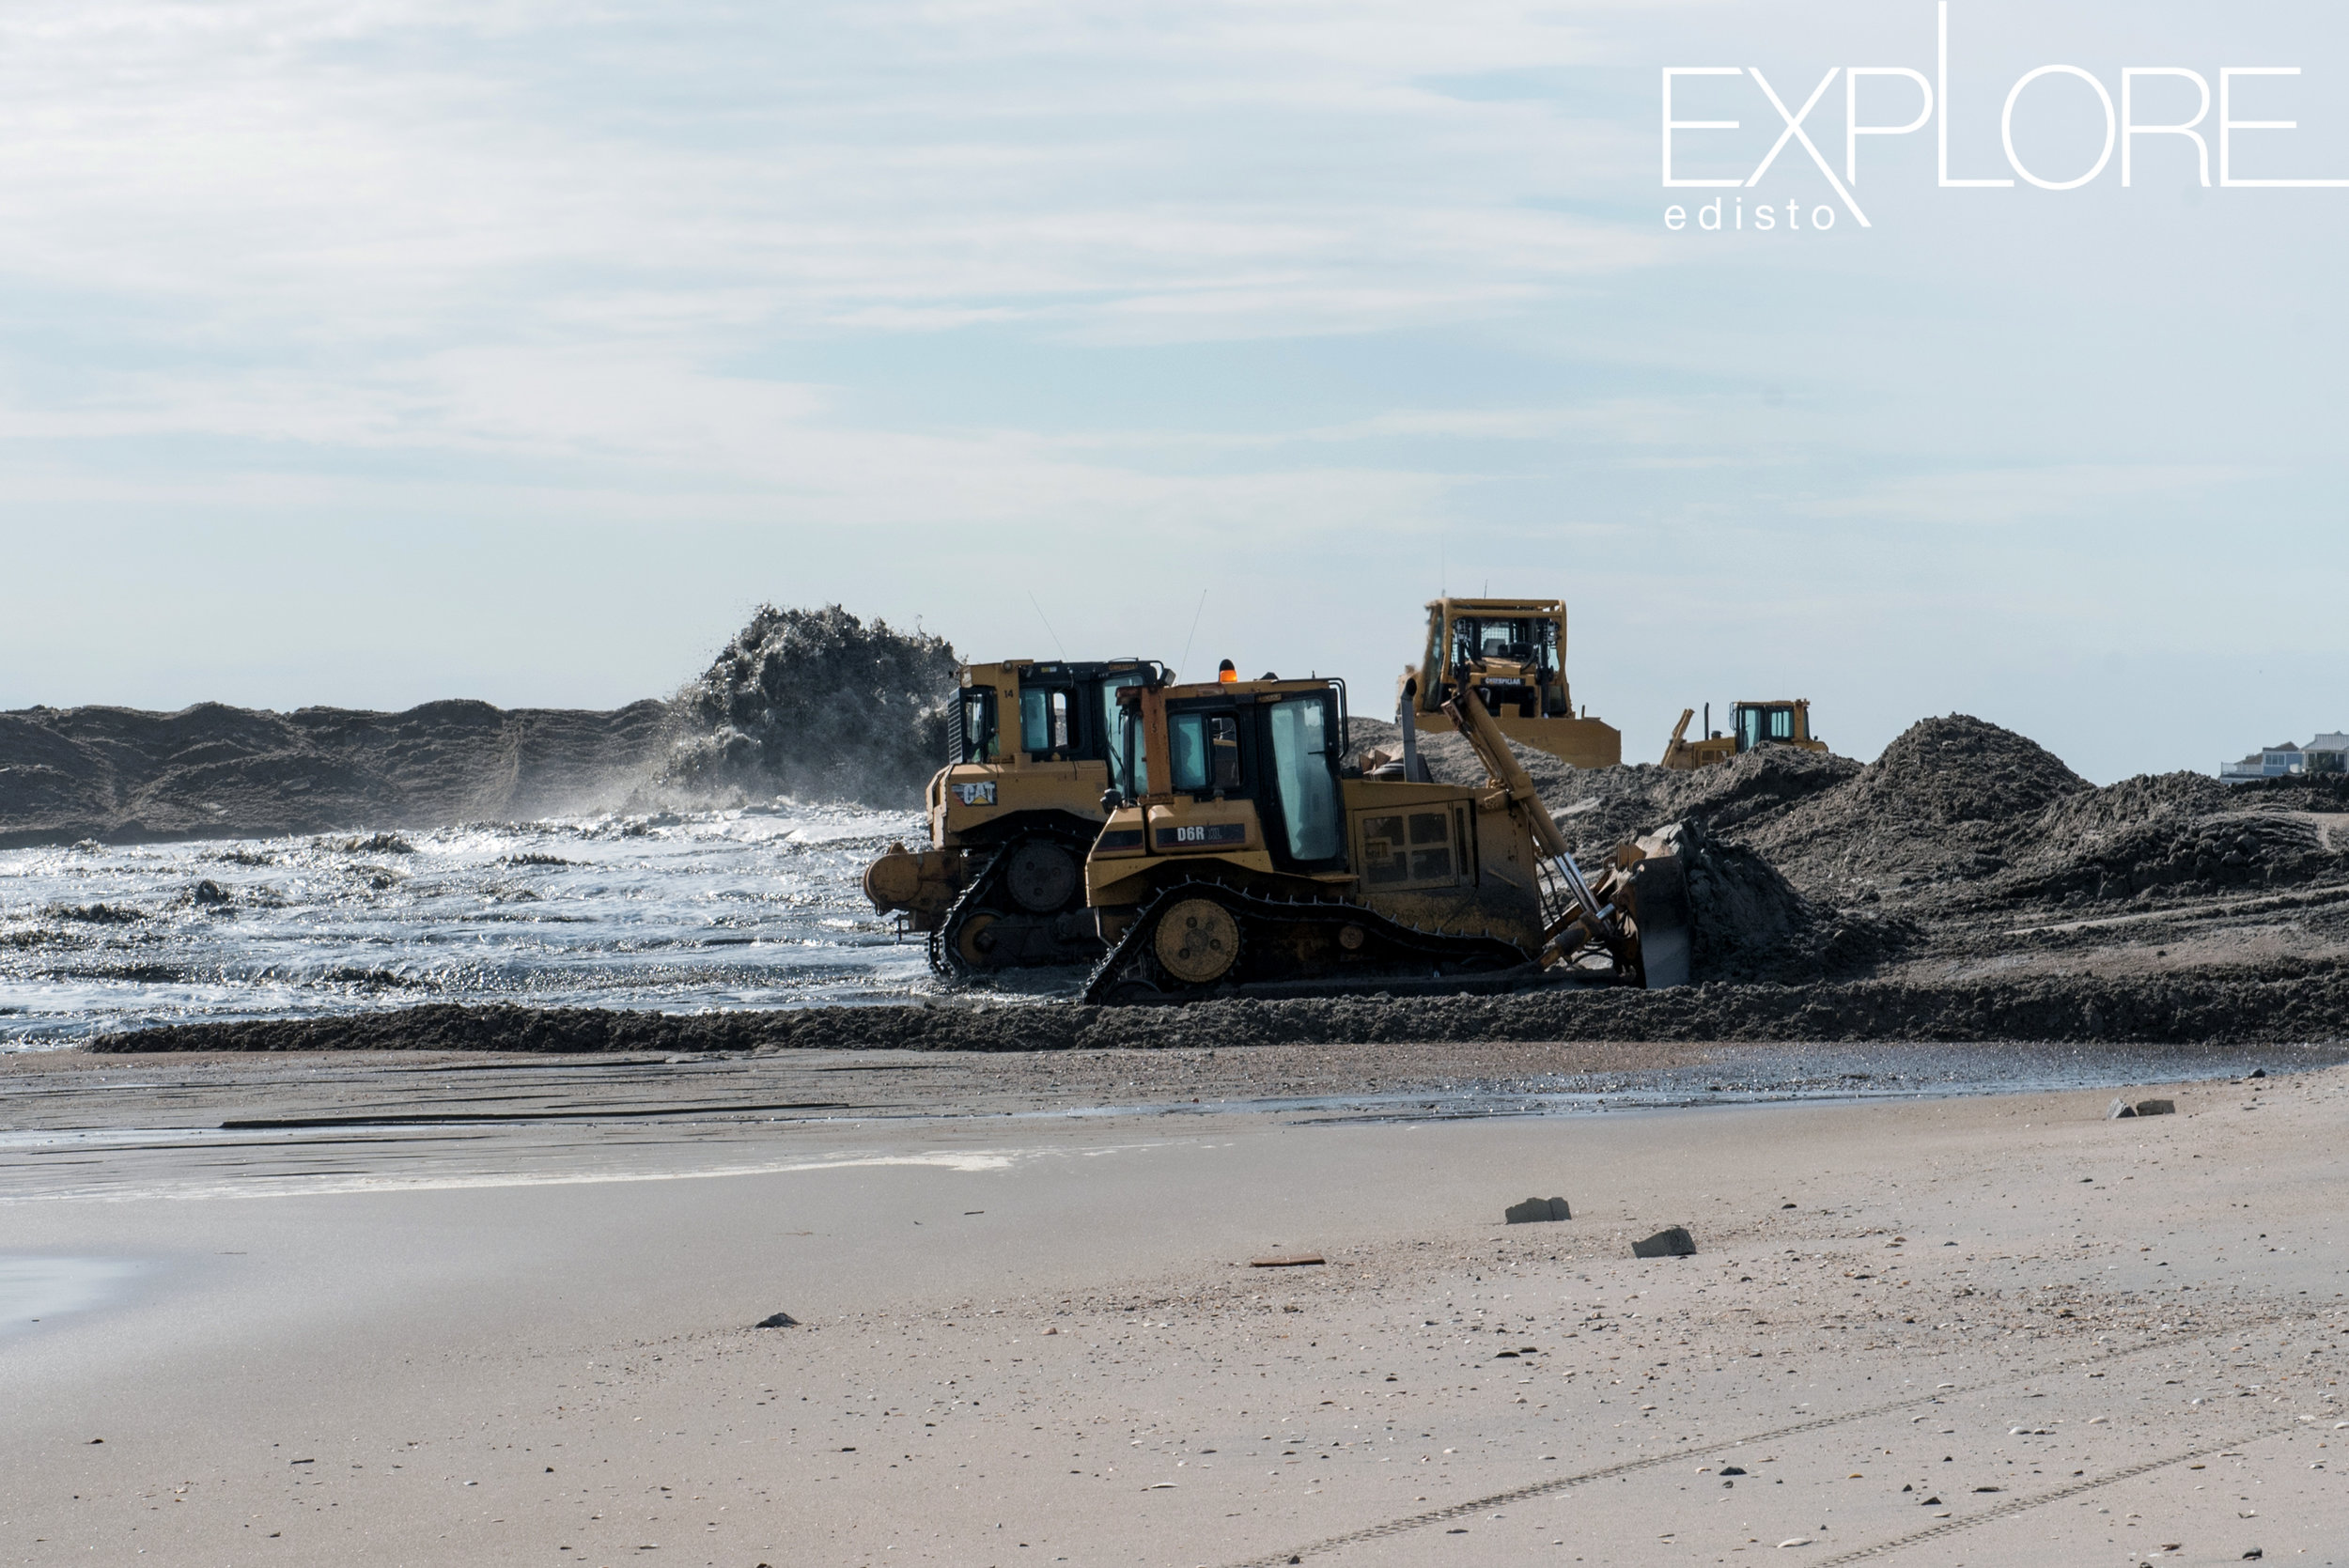 Tractors pushing sand onto the beach while it is being blasted to the shore from a pipe in the distance.